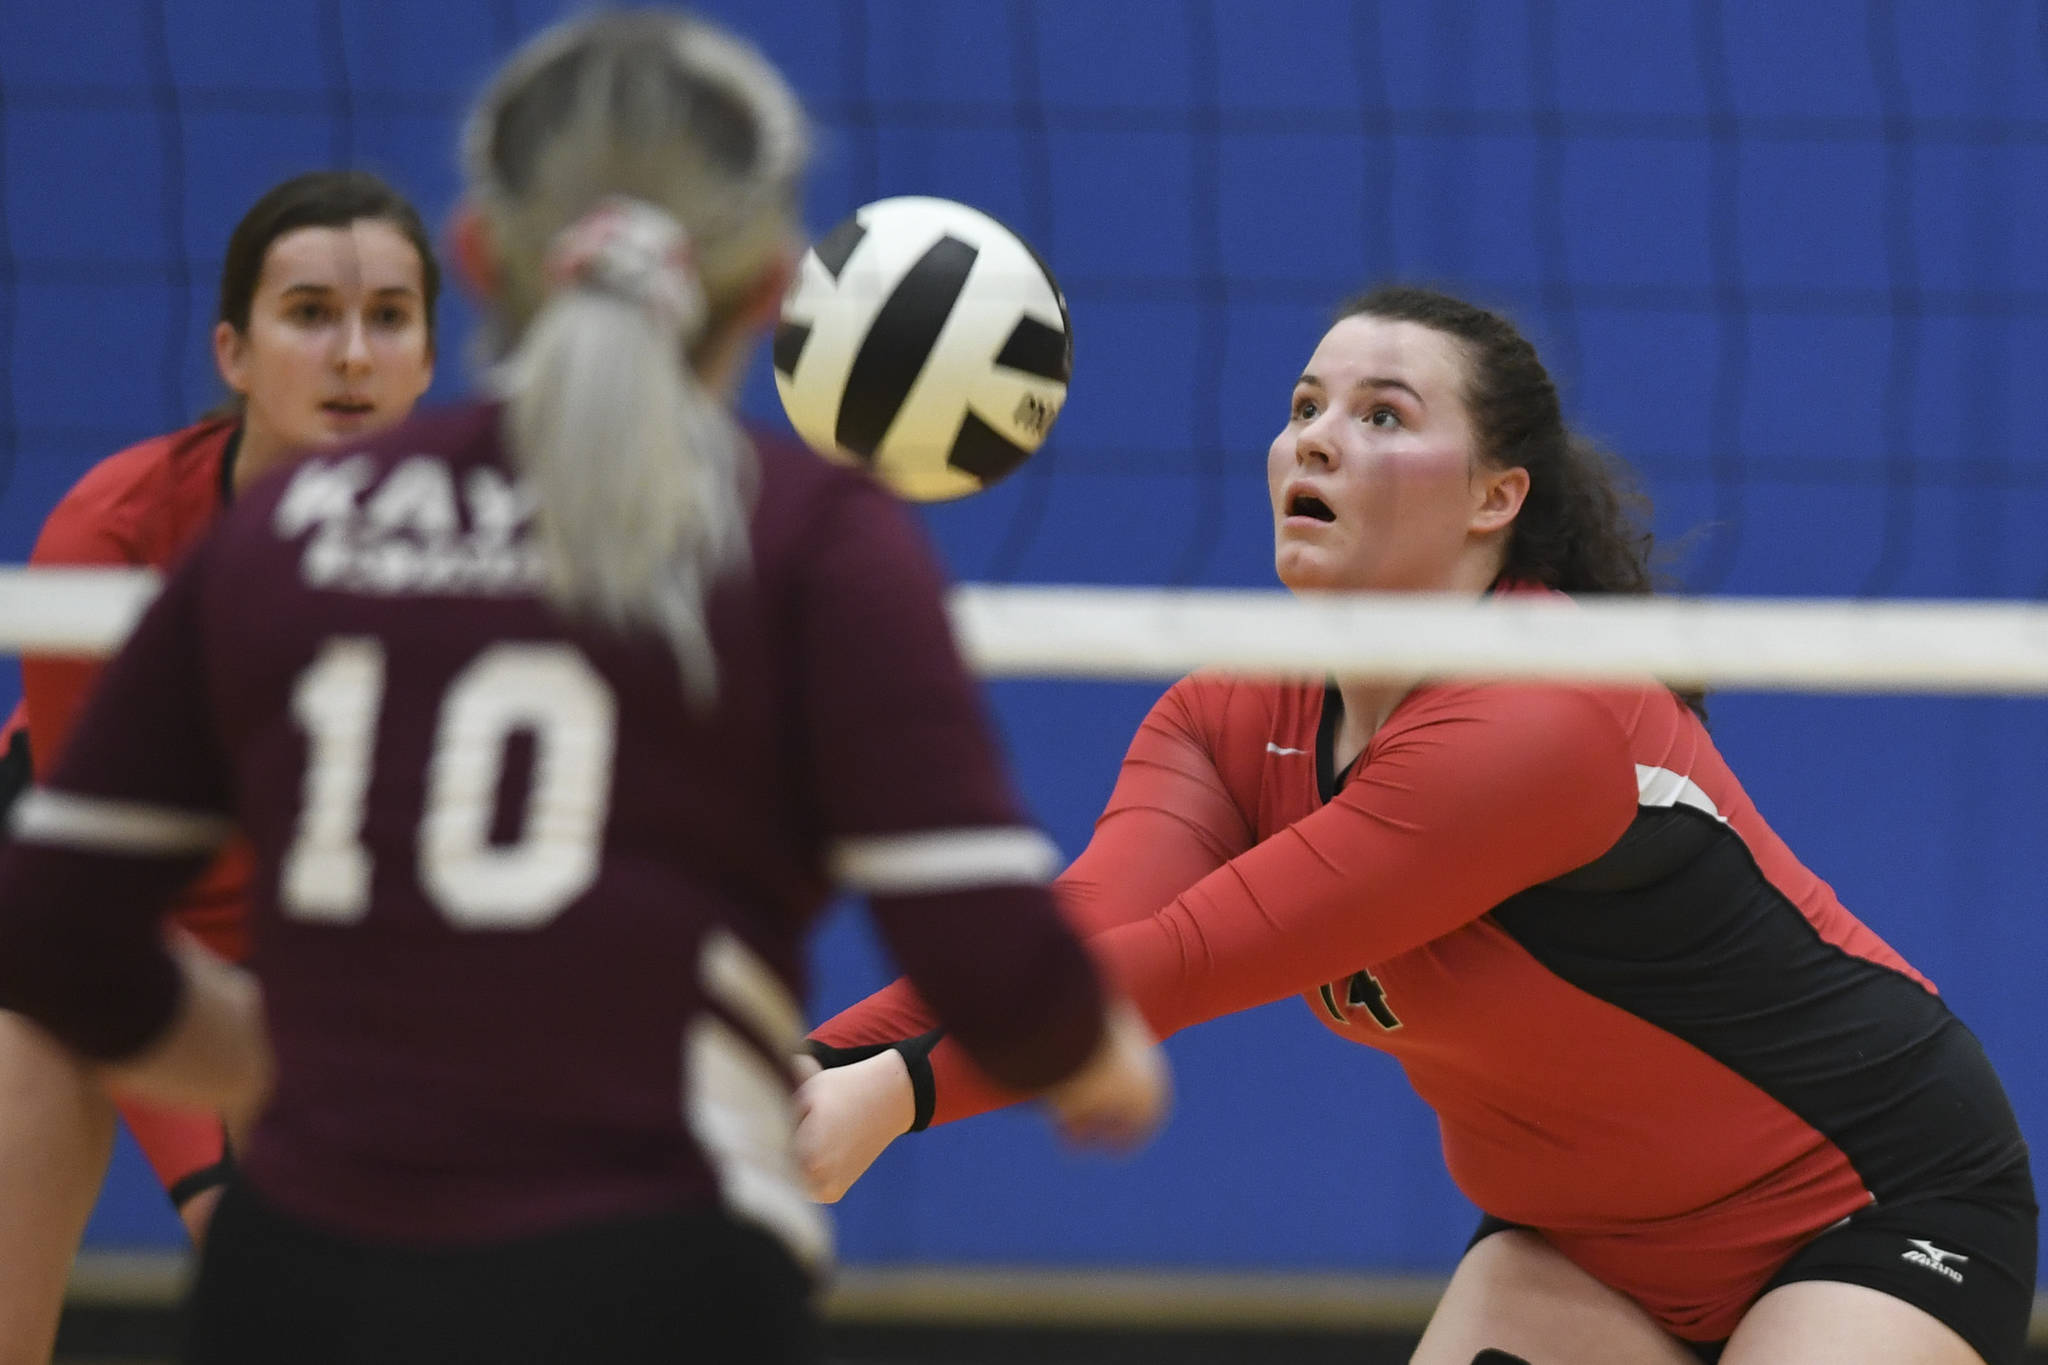 Juneau-Douglas' Gabi Griggs bumps the ball up against Ketchikan during the Region V Volleyball Tournament at Thunder Mountain High School on Thursday, Nov. 7, 2019. (Michael Penn | Juneau Empire File)